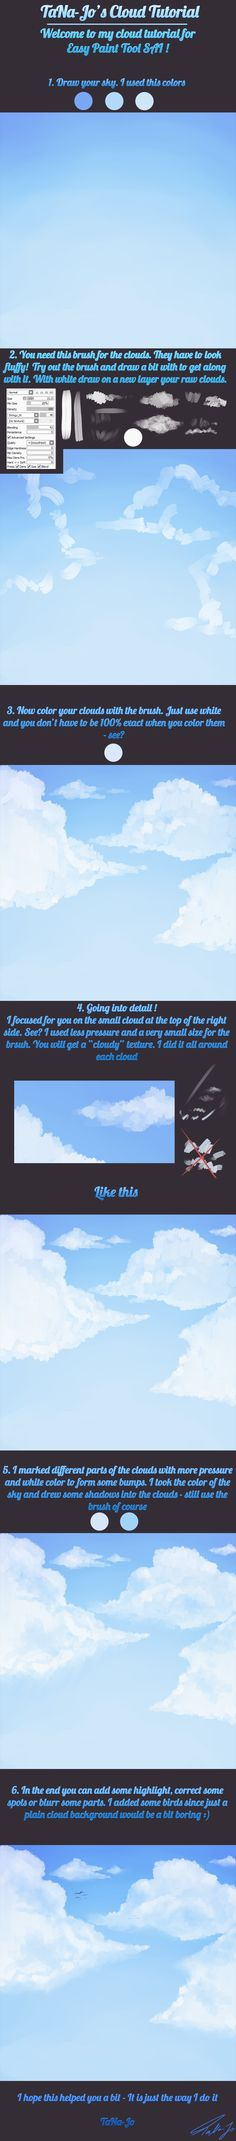 Cloud tutorial for Easy Paint Tool SAI by TaNa-Jo | Create your own roleplaying game books w/ RPG Bard: www.rpgbard.com | Pathfinder PFRPG Dungeons and Dragons ADND DND OGL d20 OSR OSRIC Warhammer 40000 40k Fantasy Roleplay WFRP Star Wars Exalted World of Darkness Dragon Age Iron Kingdoms Fate Core System Savage Worlds Shadowrun Dungeon Crawl Classics DCC Call of Cthulhu CoC Basic Role Playing BRP Traveller Battletech The One Ring TOR fantasy science fiction horror